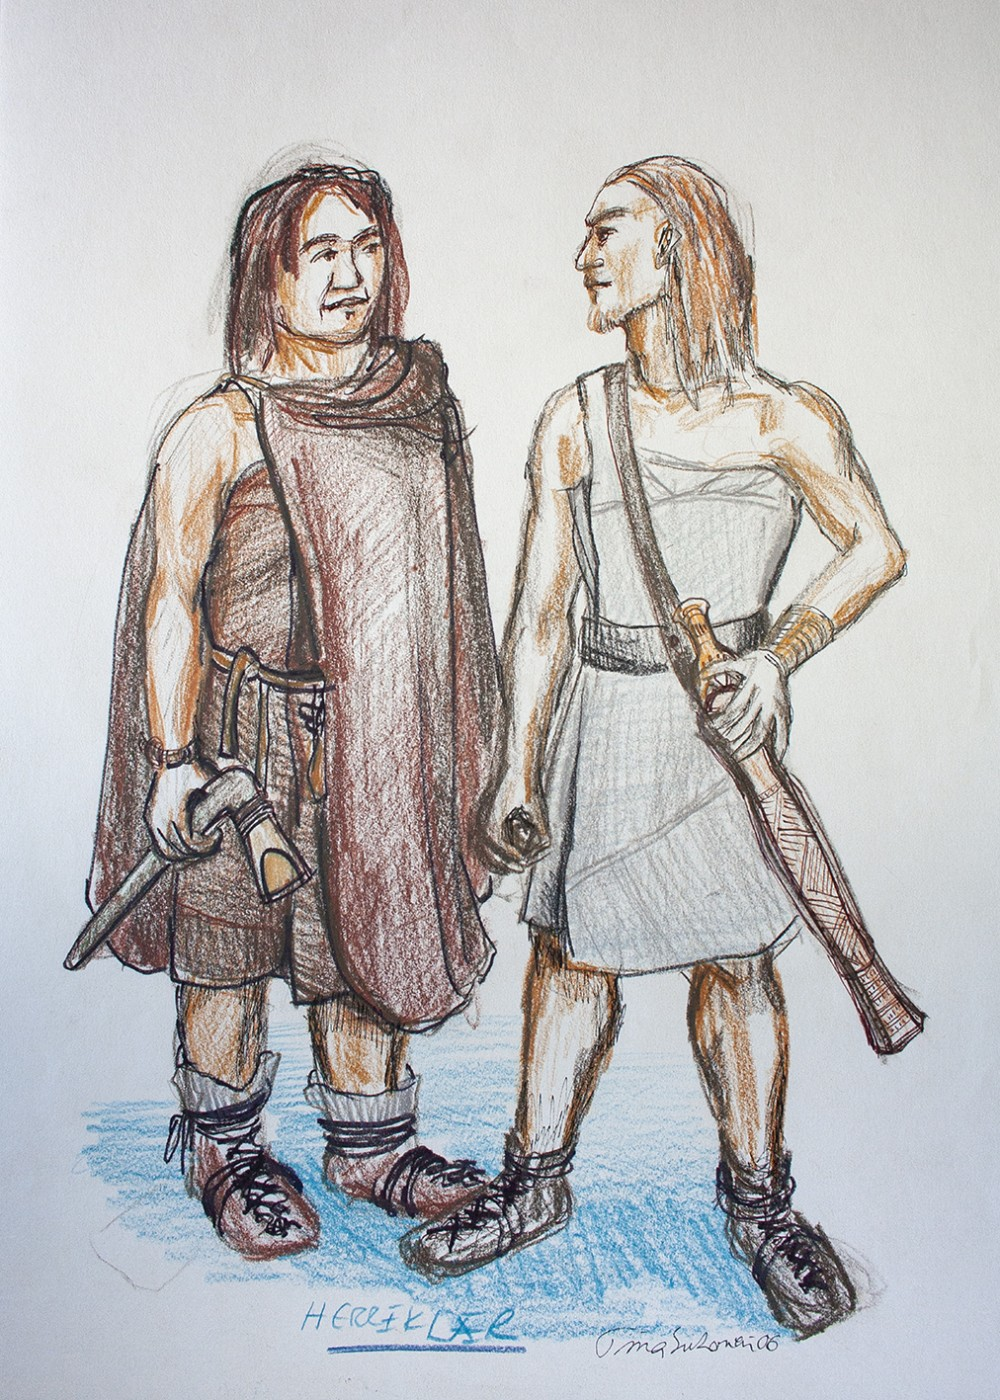 Two men wearing Bronze Age hunter costumes with capes and shoes. One man is equipped with a sword and the other one is equipped with an axe.